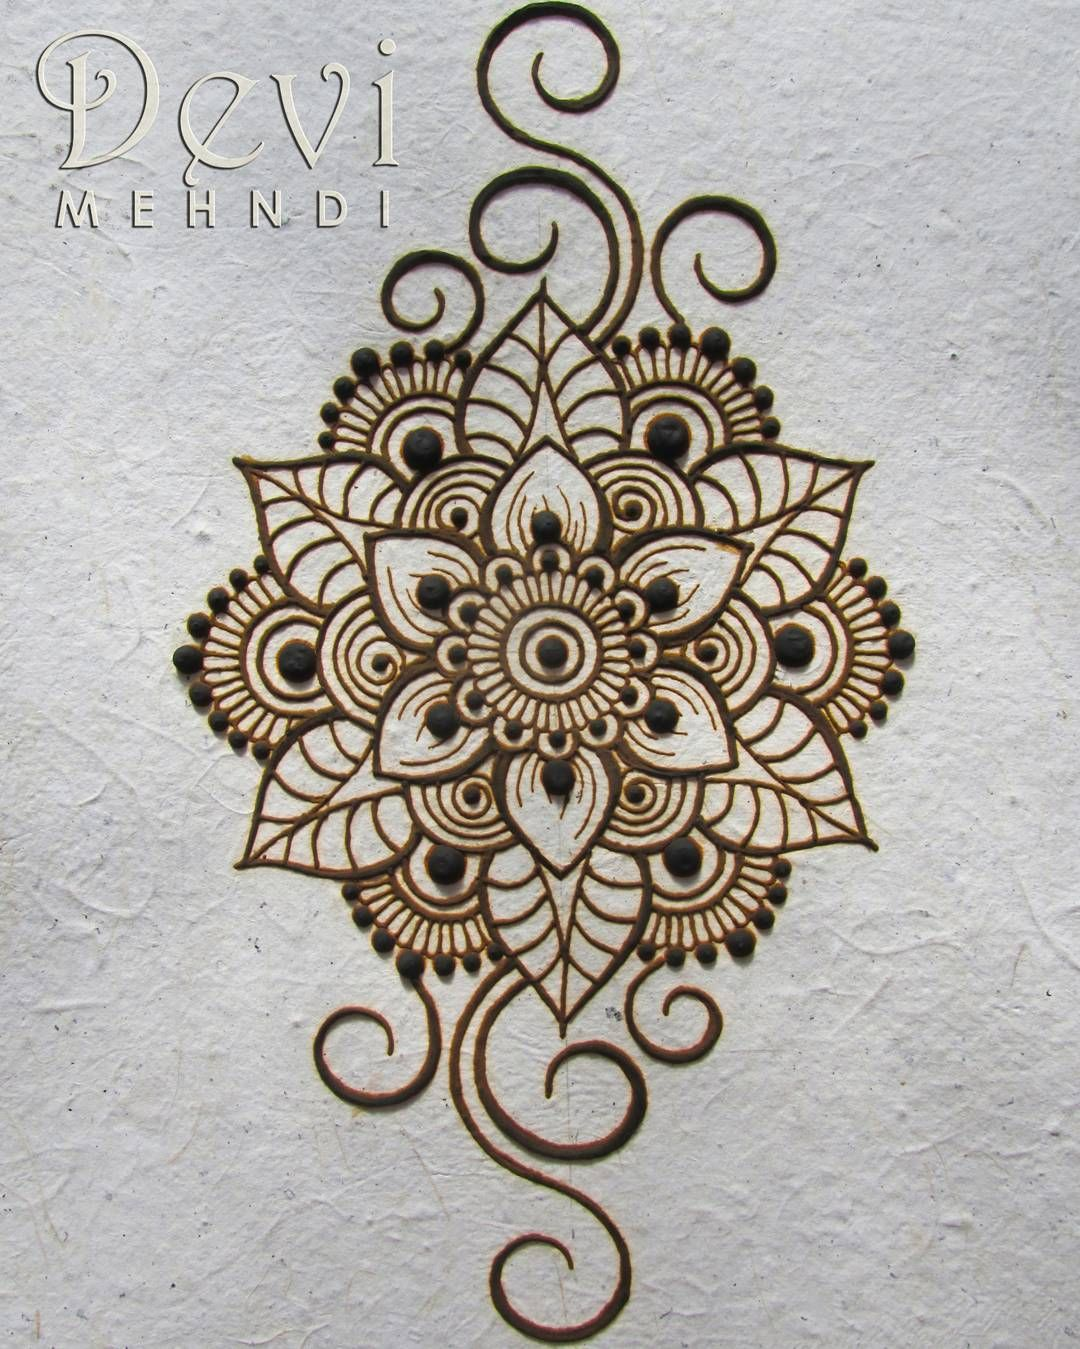 Henna Flower Designs: I Wish You All A Nice Week! It's Monday! So Let's Do It